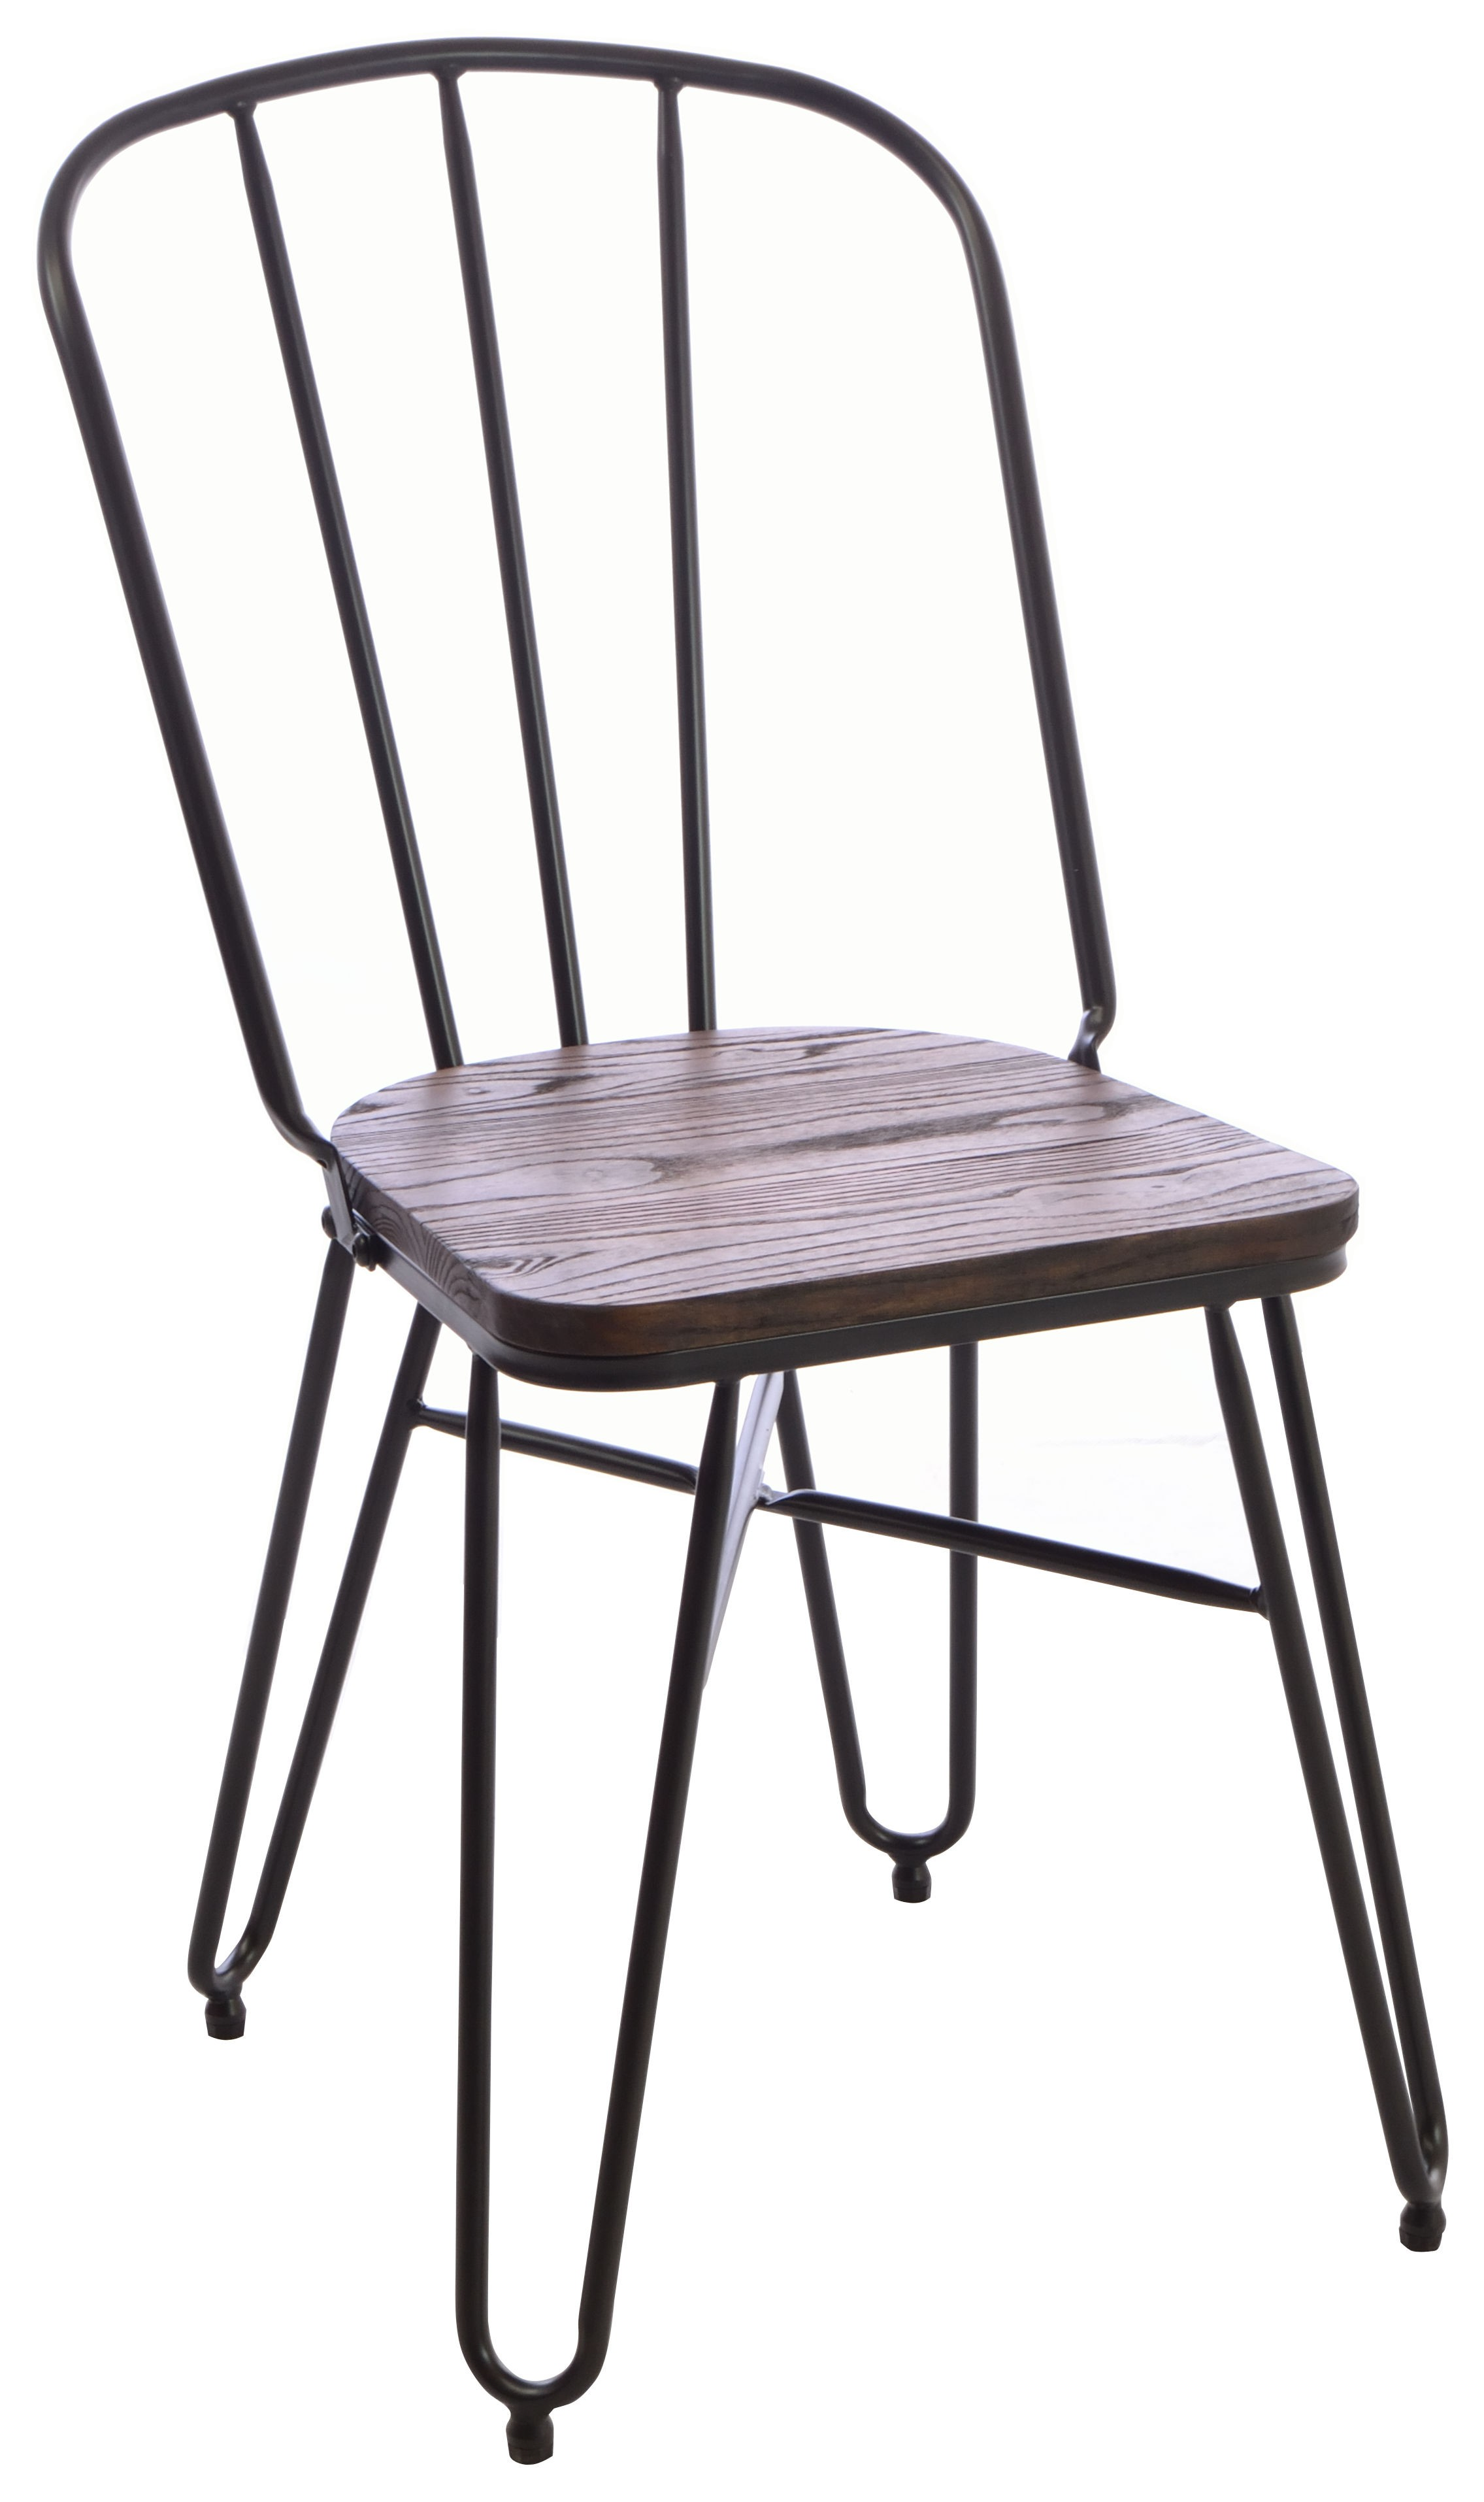 Fitzroy Hairpin Chair